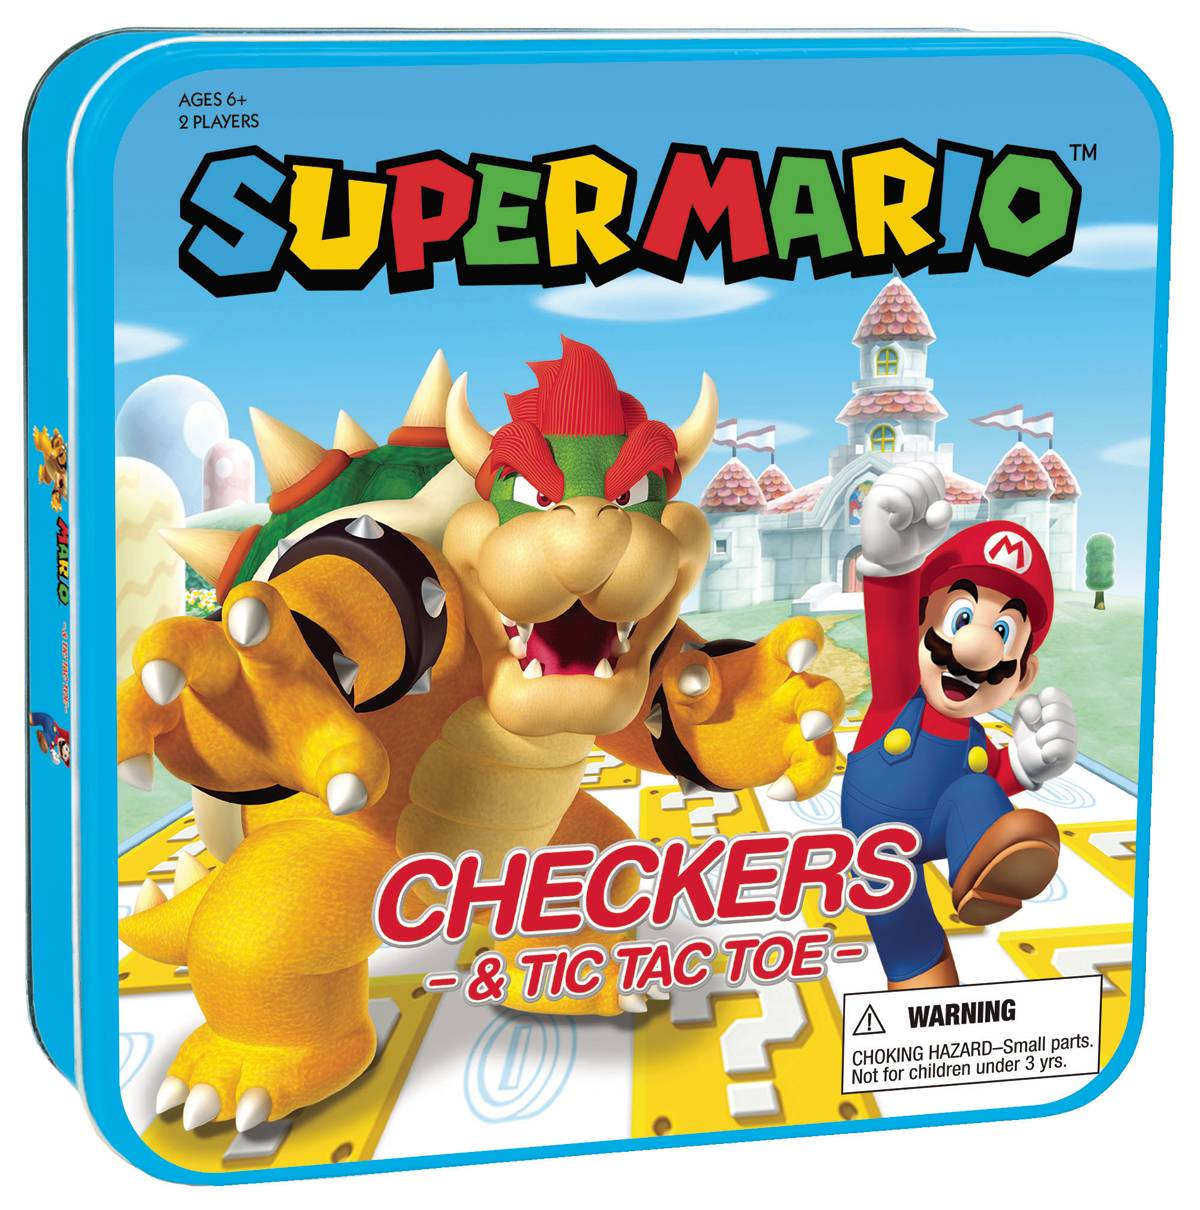 SUPER MARIO CHECKERS & TIC TAC TOE